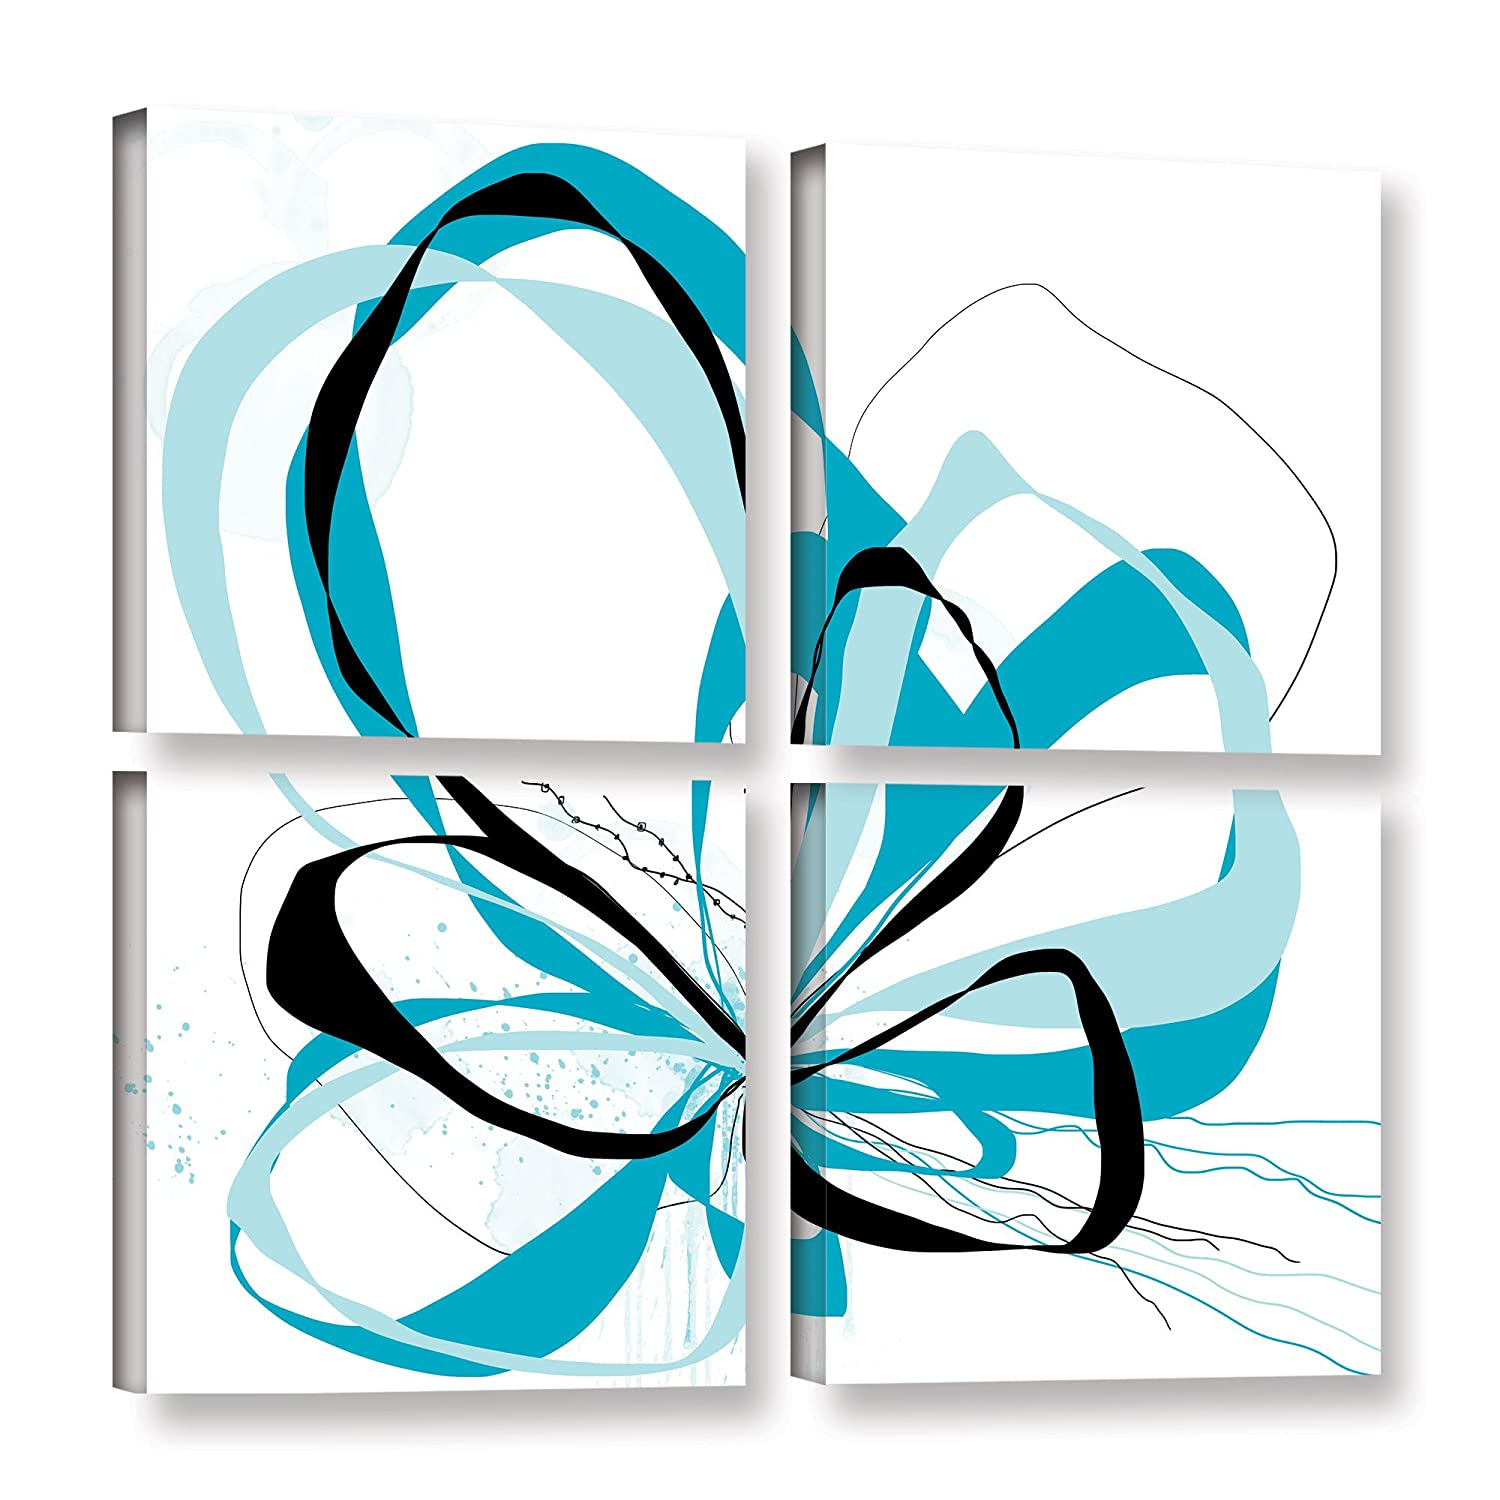 4 Piece Gallery Wrapped Canvas Square Set 36X36 ArtWall Jan Weisss Blue Knot